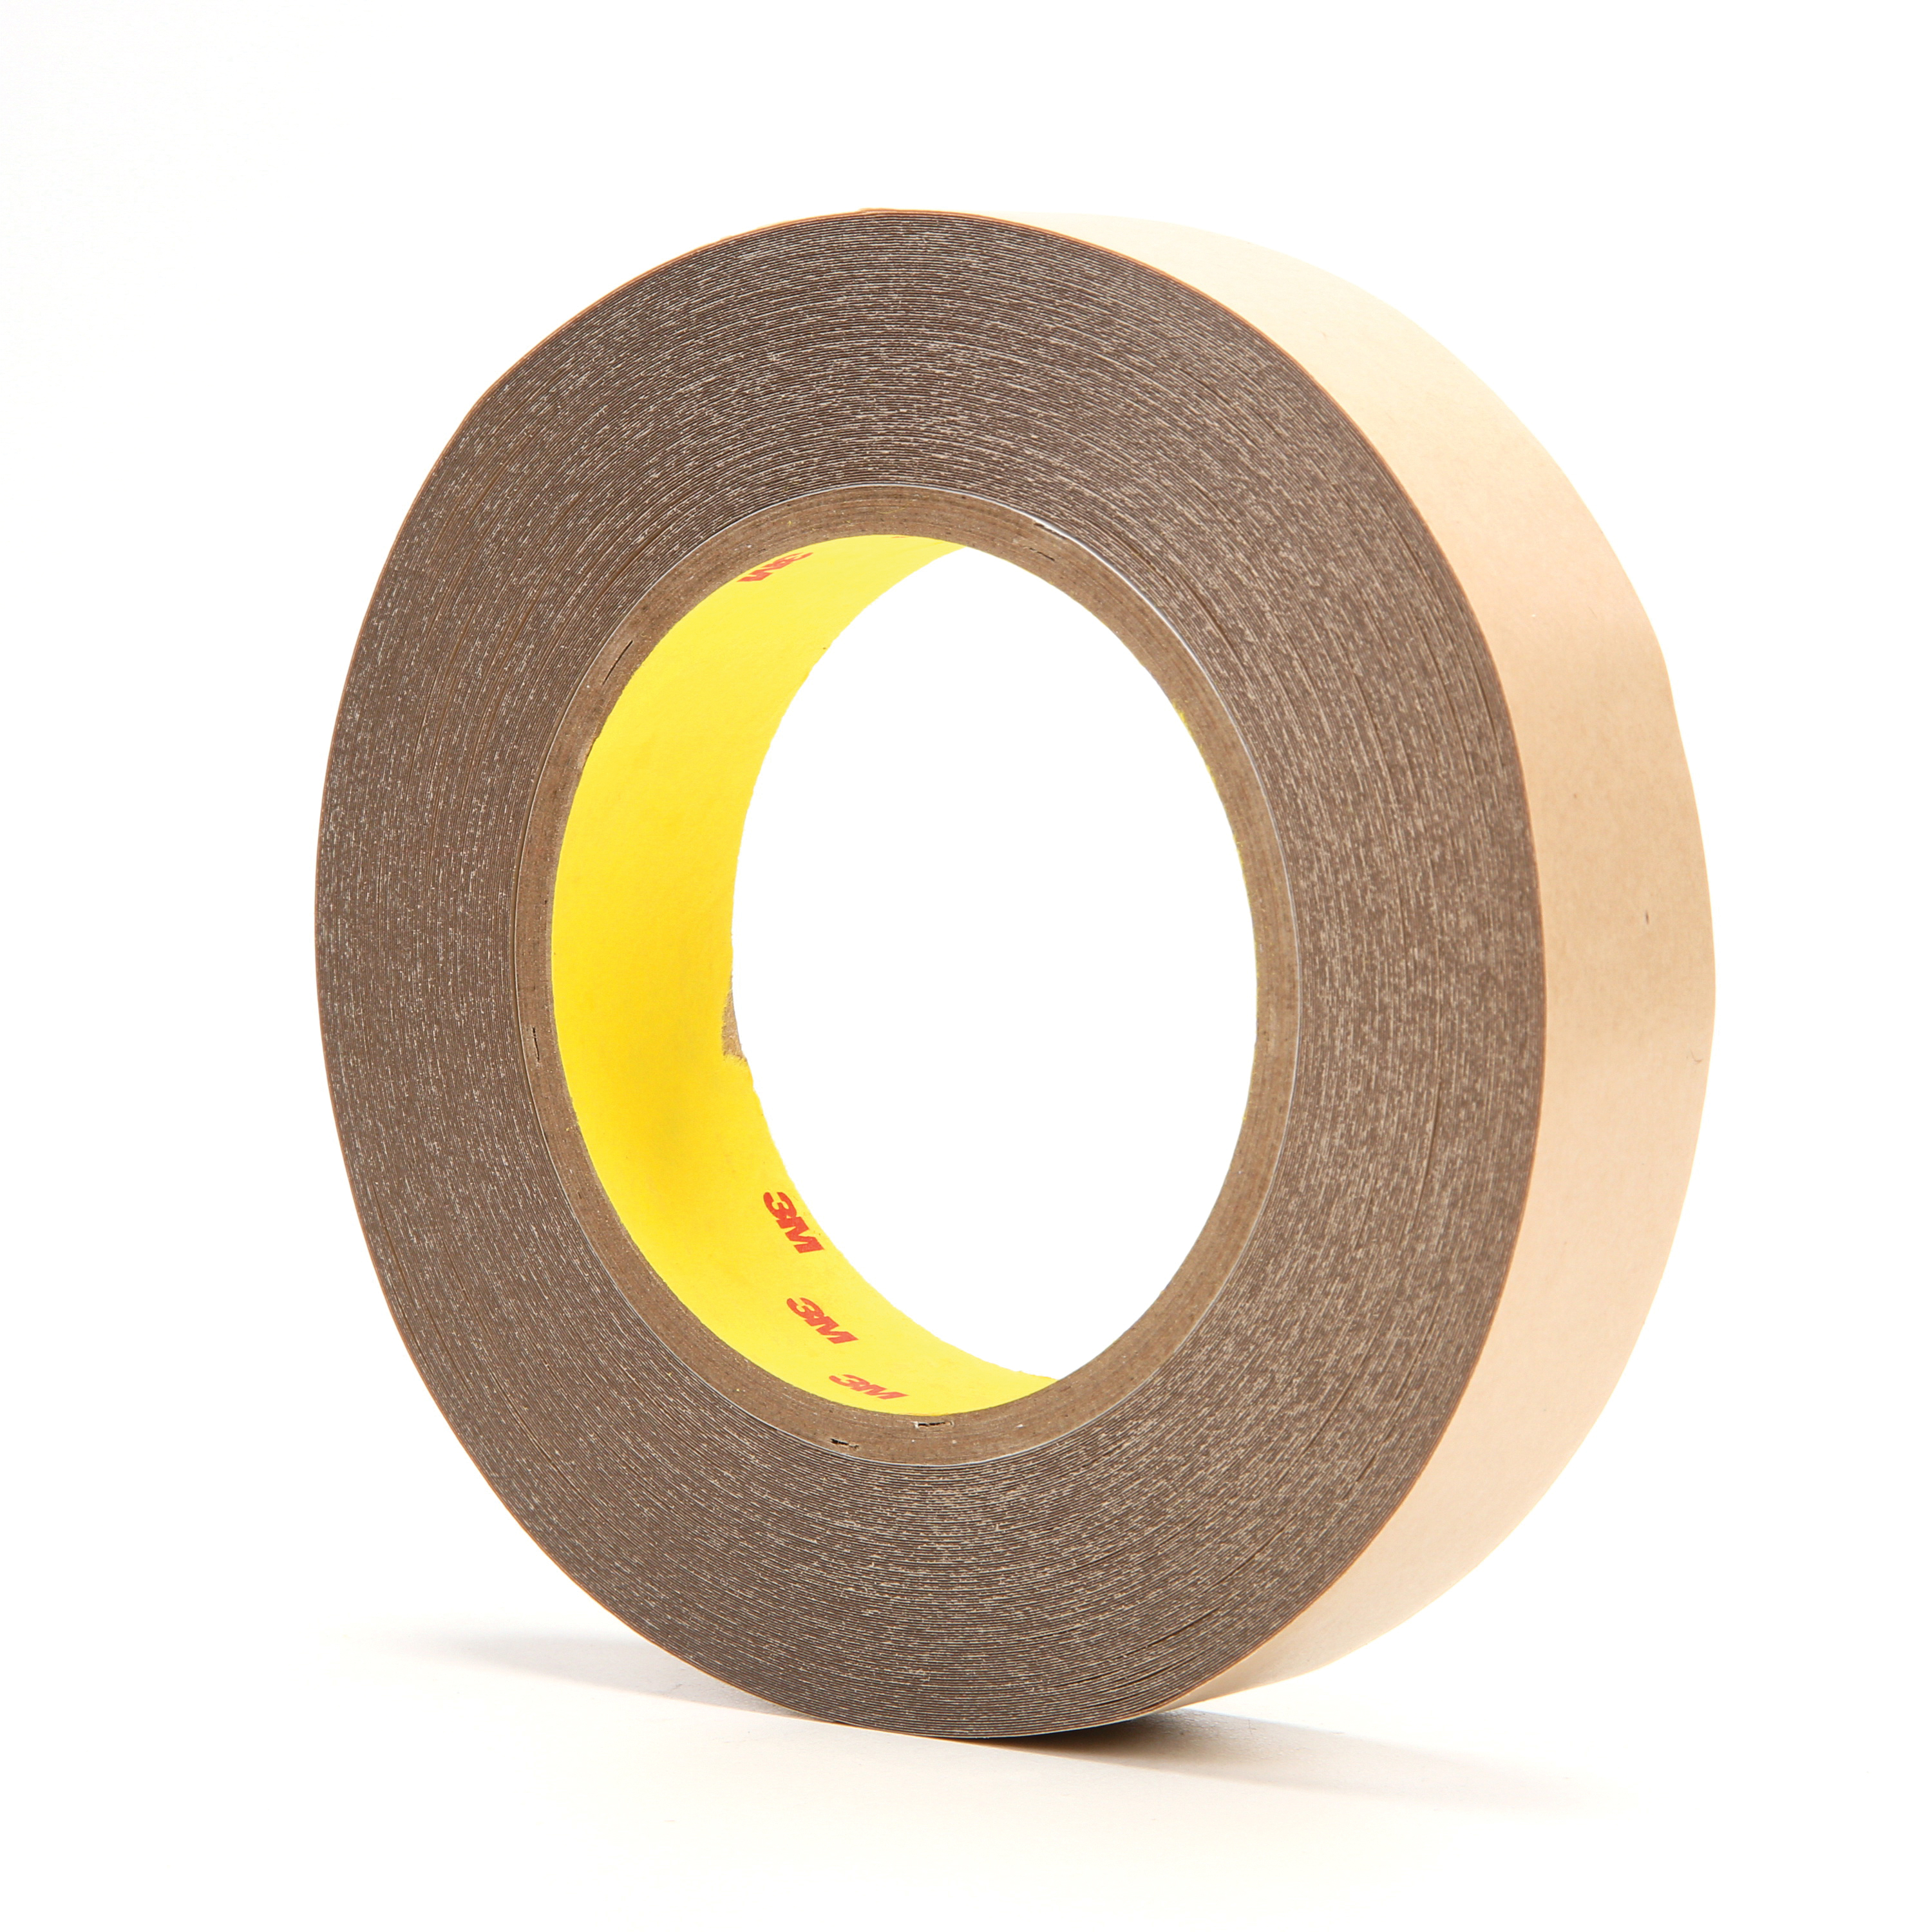 3M™ 021200-67796 Double Coated Tape, 36 yd L x 1 in W, 5.6 mil THK, 350 Acrylic Adhesive, Thin Polyester Backing, Clear